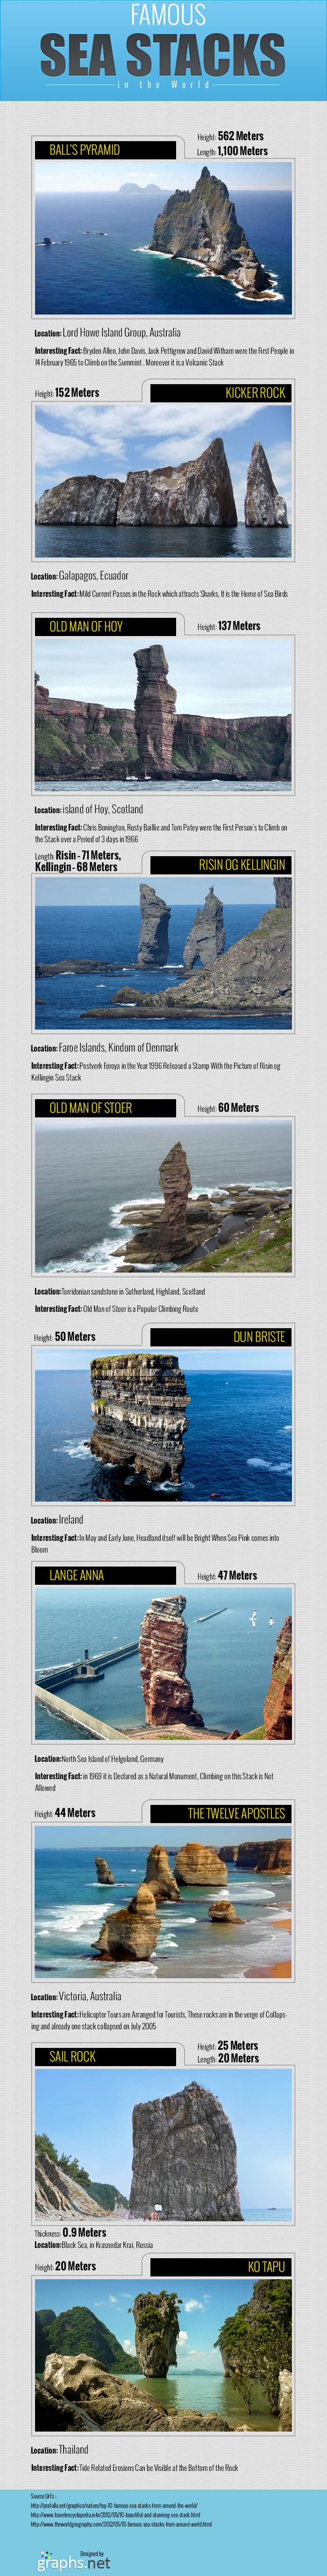 Infographic - Famous-sea-stacks-in-the-world